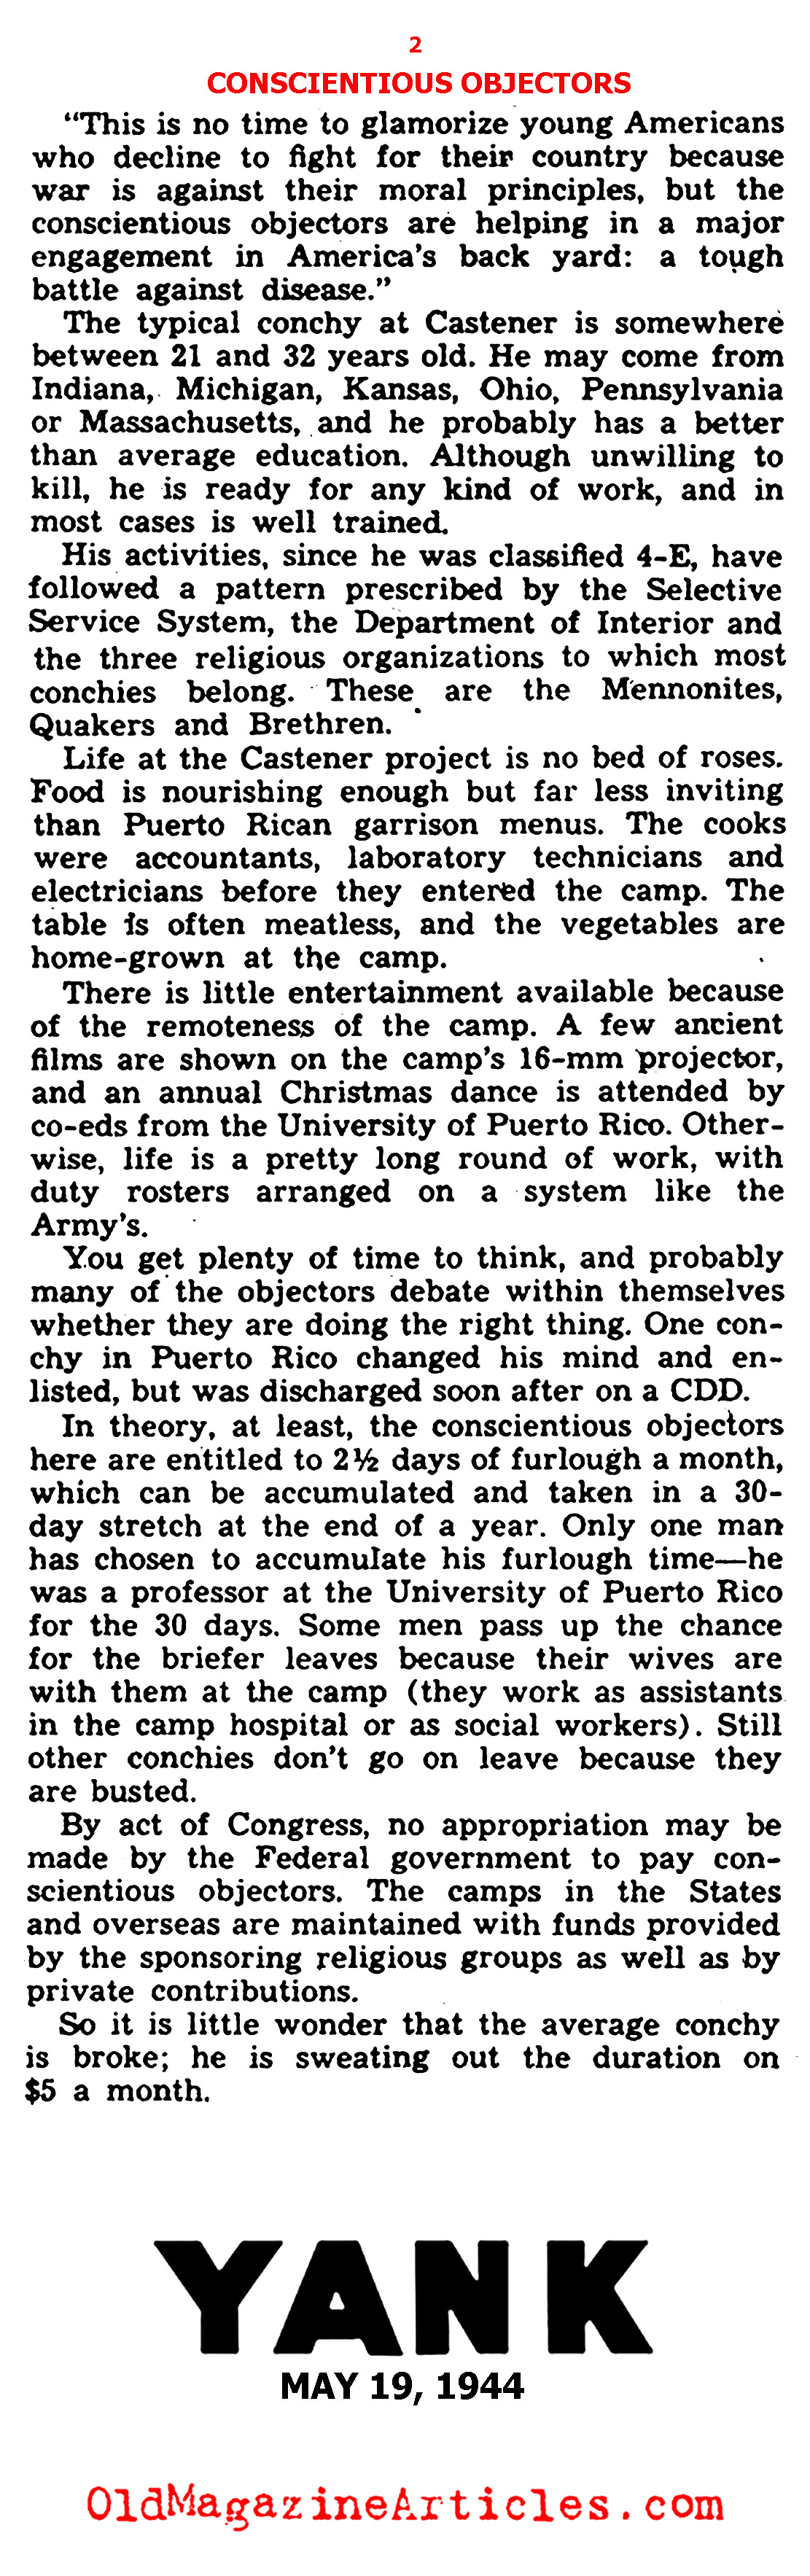 Conscientious Objectors (Yank Magazine, 1944)